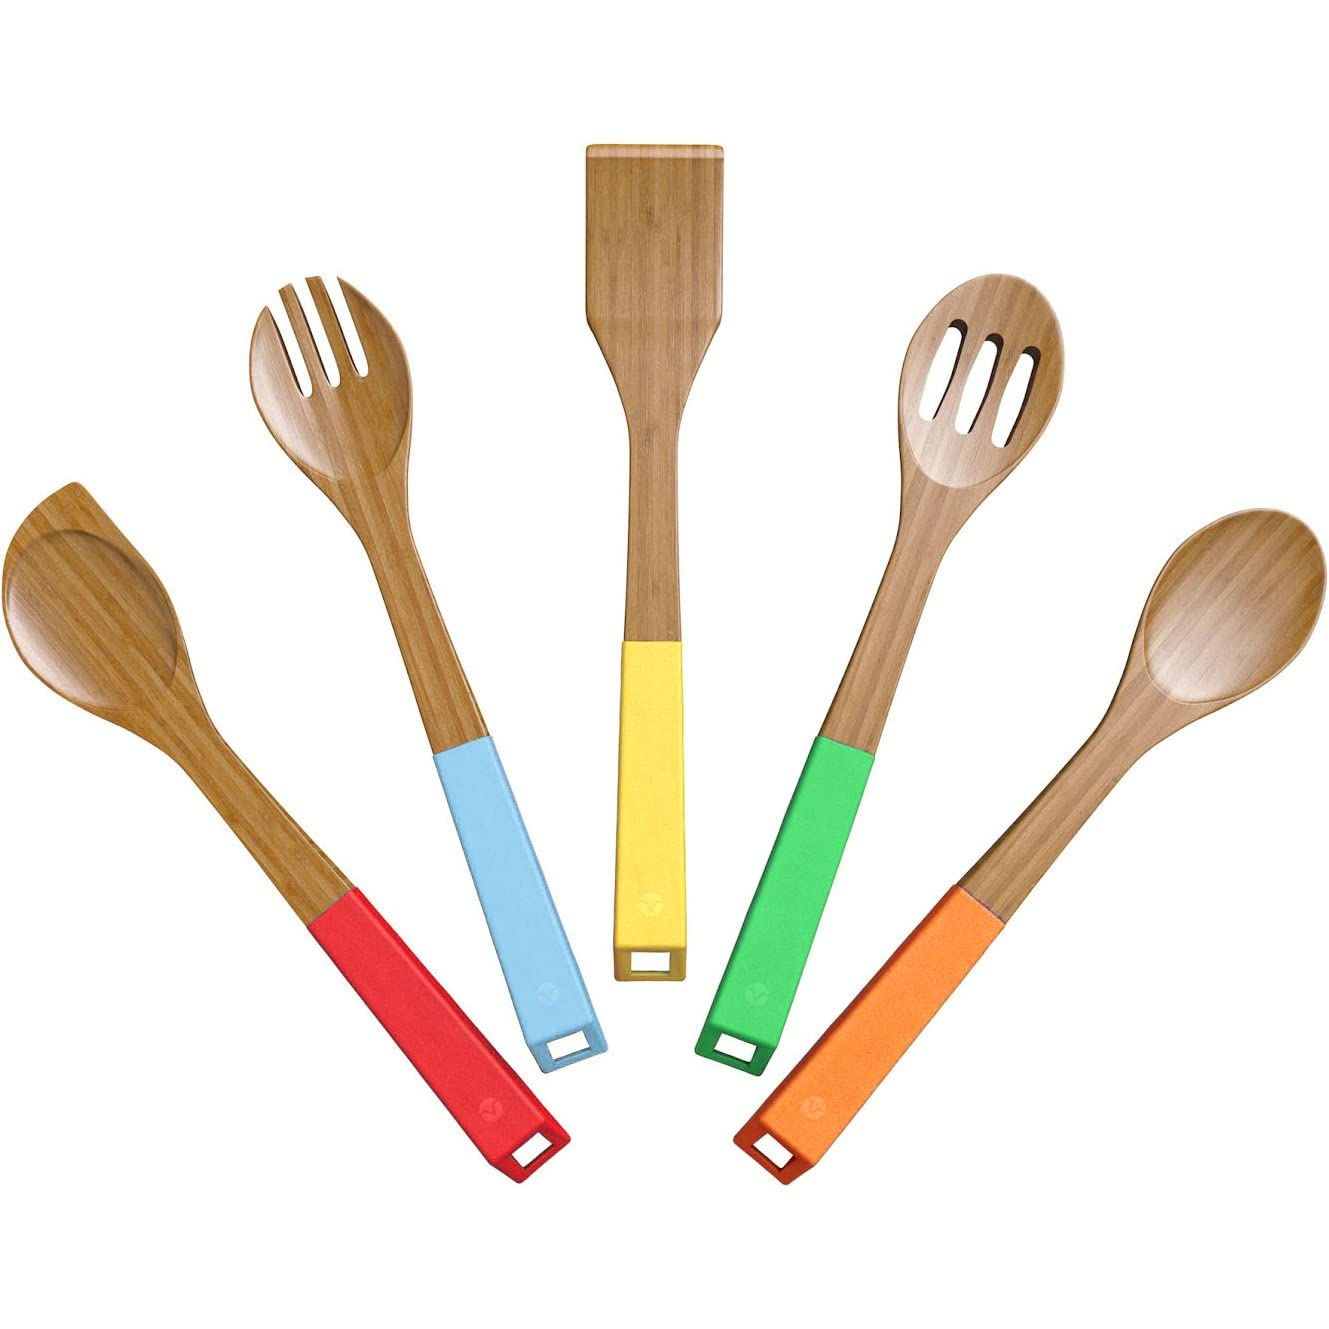 Best Wooden Spoon - January 2018 - Buyer\u0027s Guide and Reviews